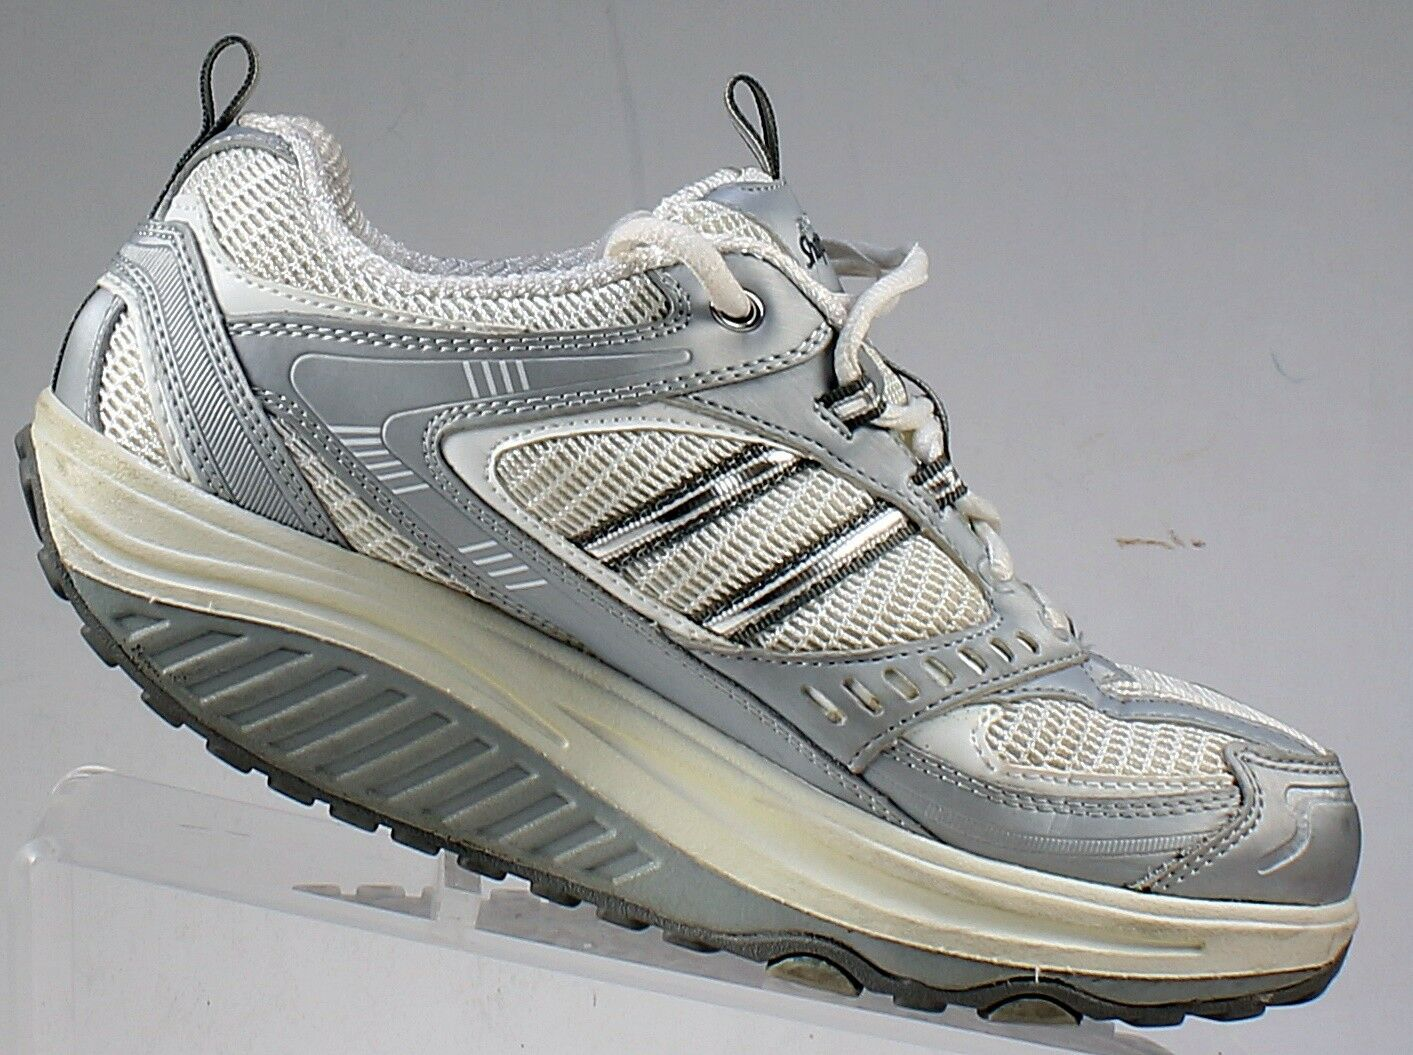 Skechers Shape Ups 11814 Women Rocker Toning Sneaker Shoe 7.5 training athletic image 4